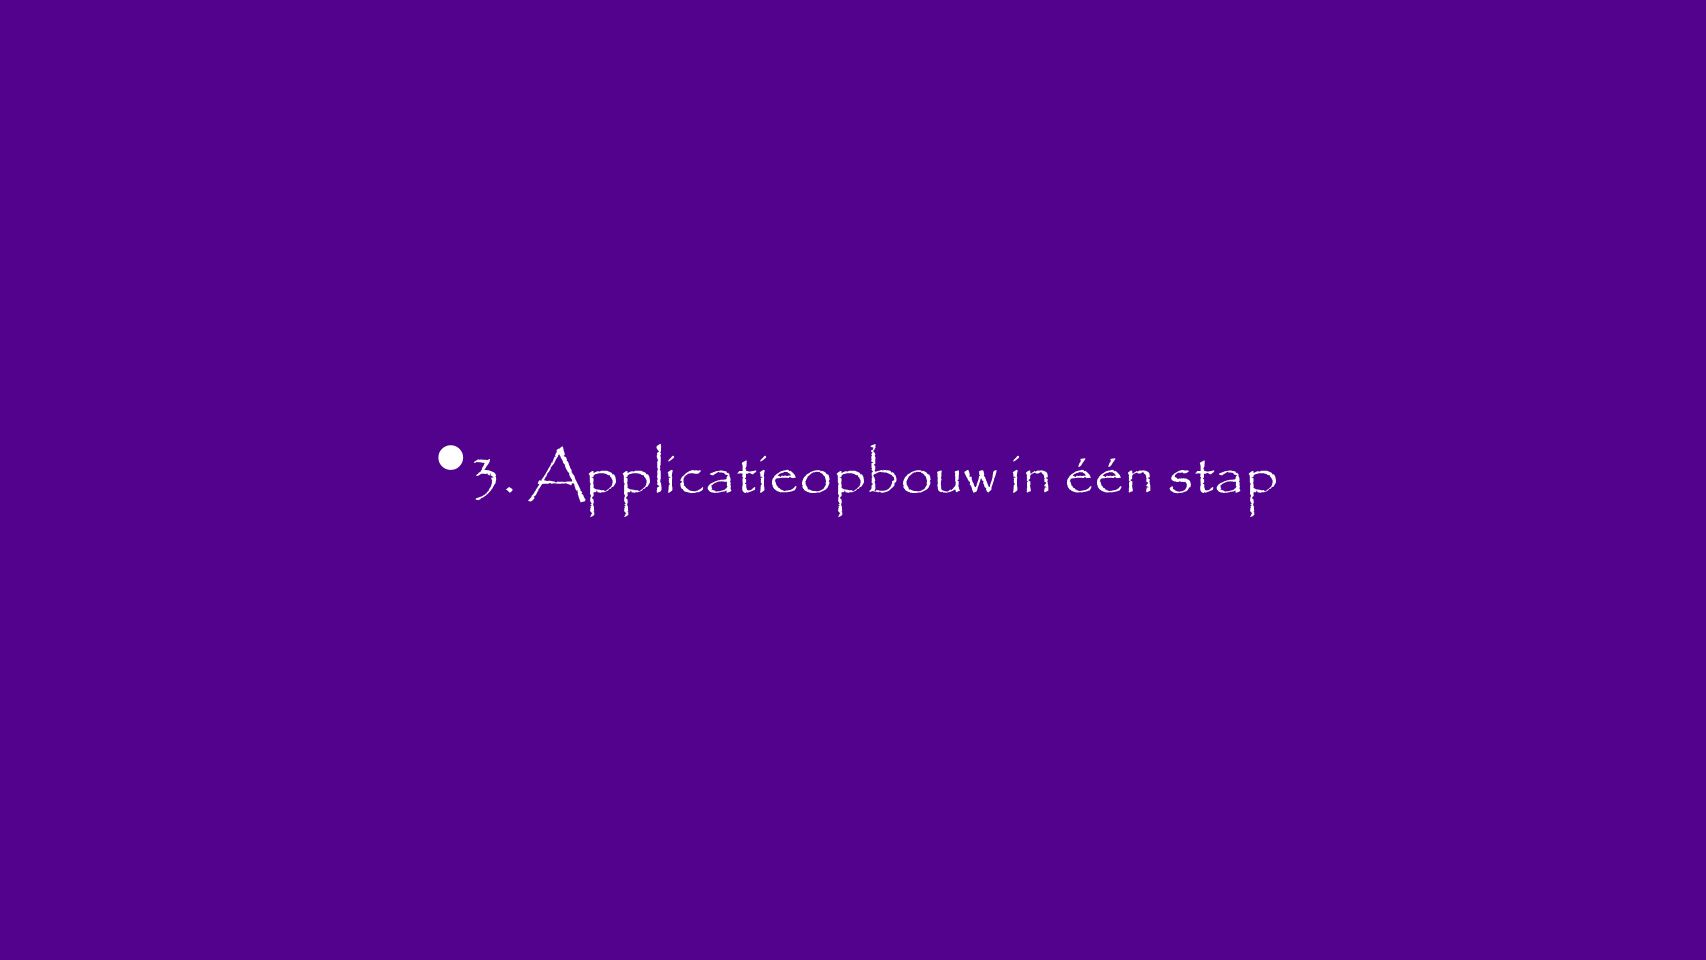 3. Applicatieopbouw in één stap